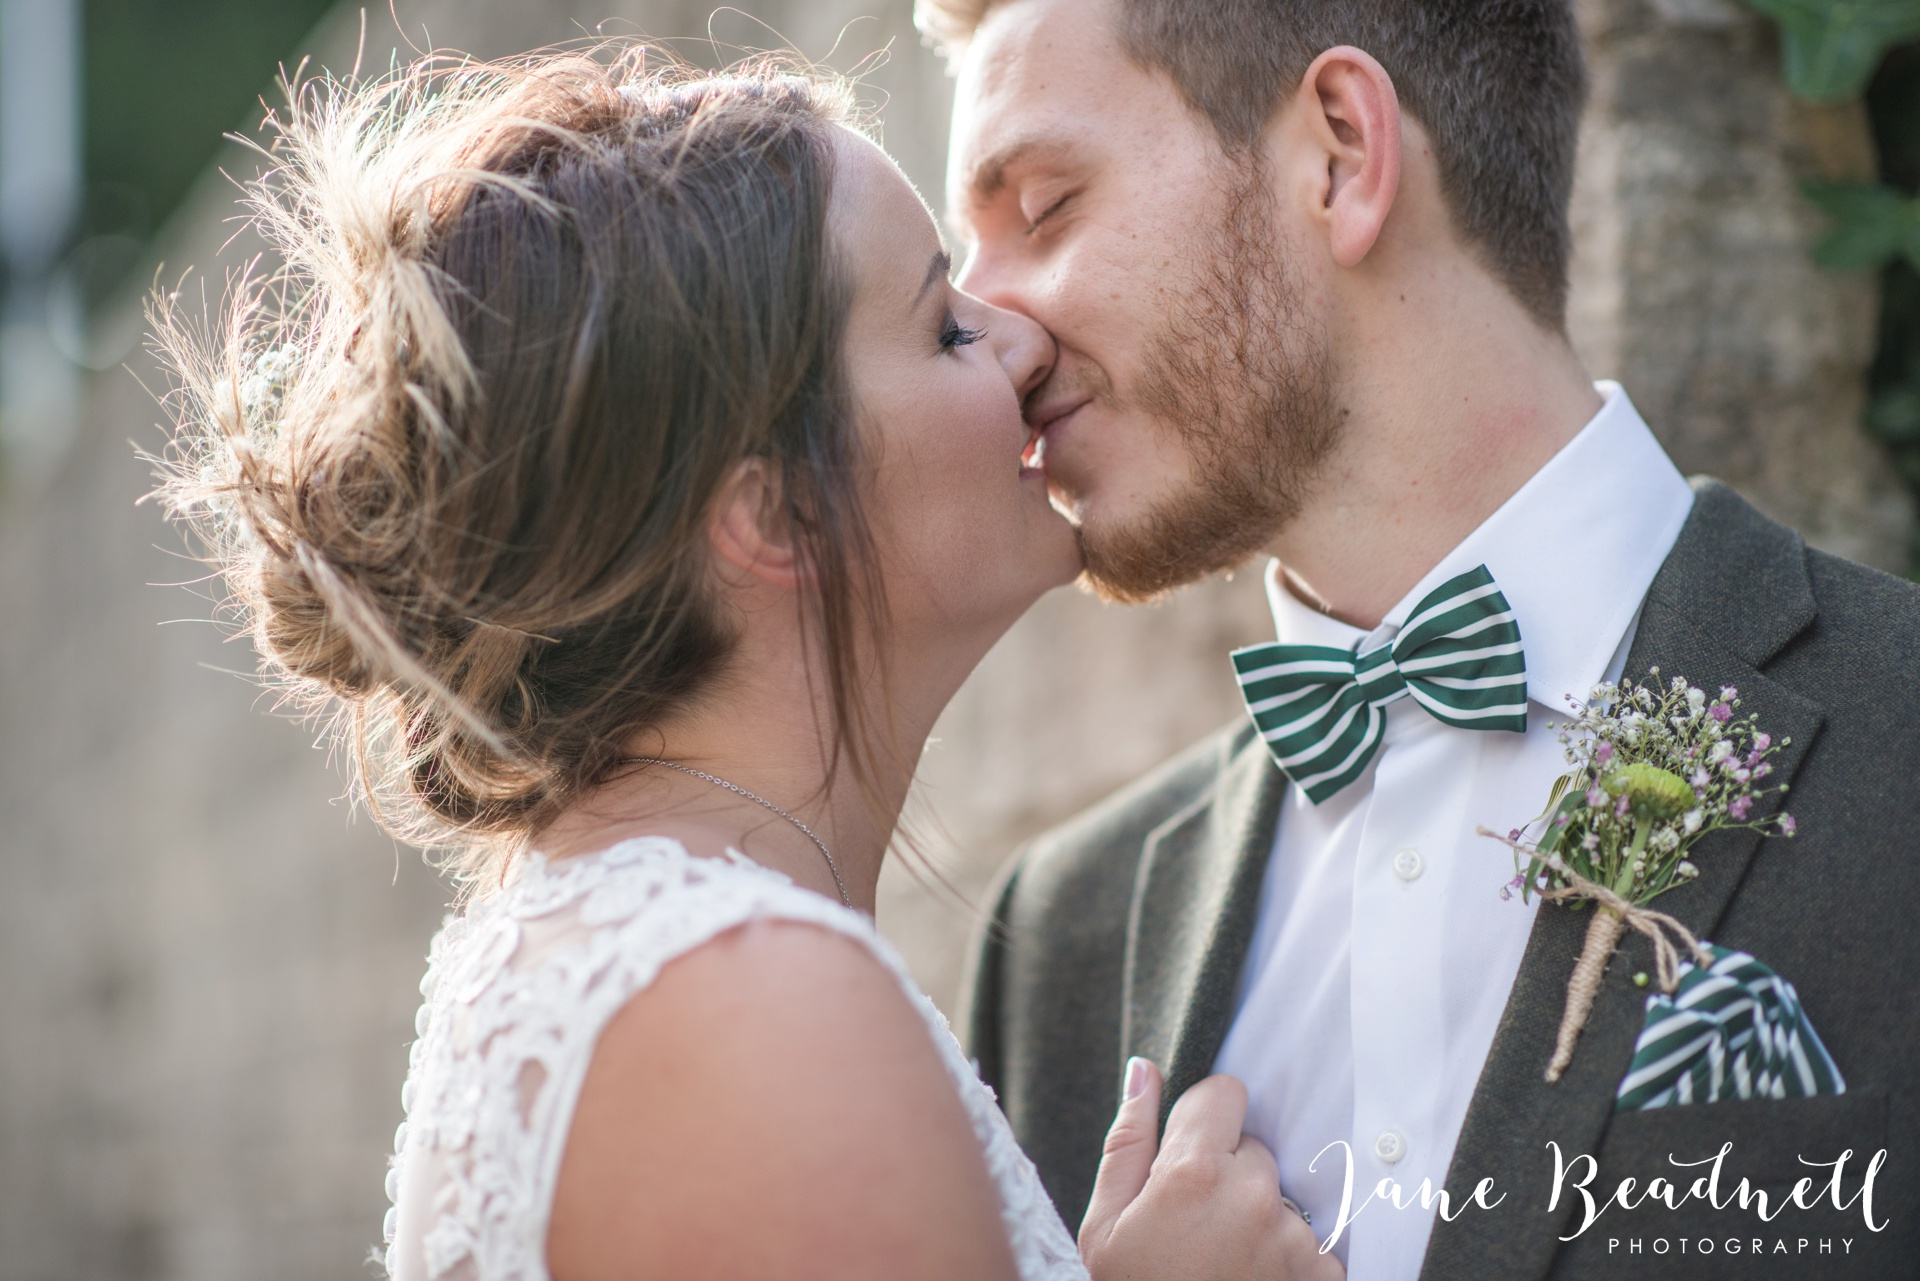 Jane Beadnell fine art wedding photographer The Old Deanery Ripon_0091